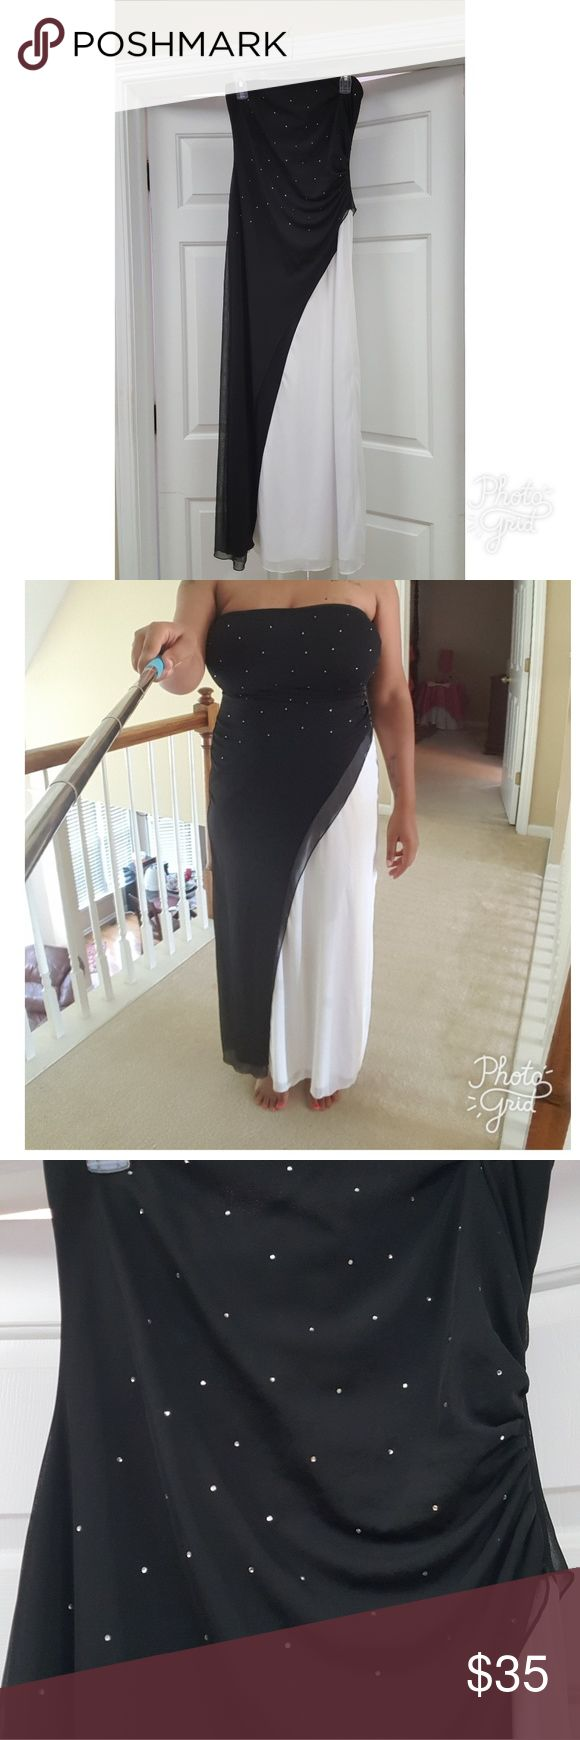 "Black and white gown Worn once. Smoke and pet free home. Perfect for wedding, dance, or any kind of special occasion. Size is 11/12. Length is 50"", bust 30"", waist is 36"". Dress has great stretch around bust and waist area. 100% polyester. B. Smart Dresses"